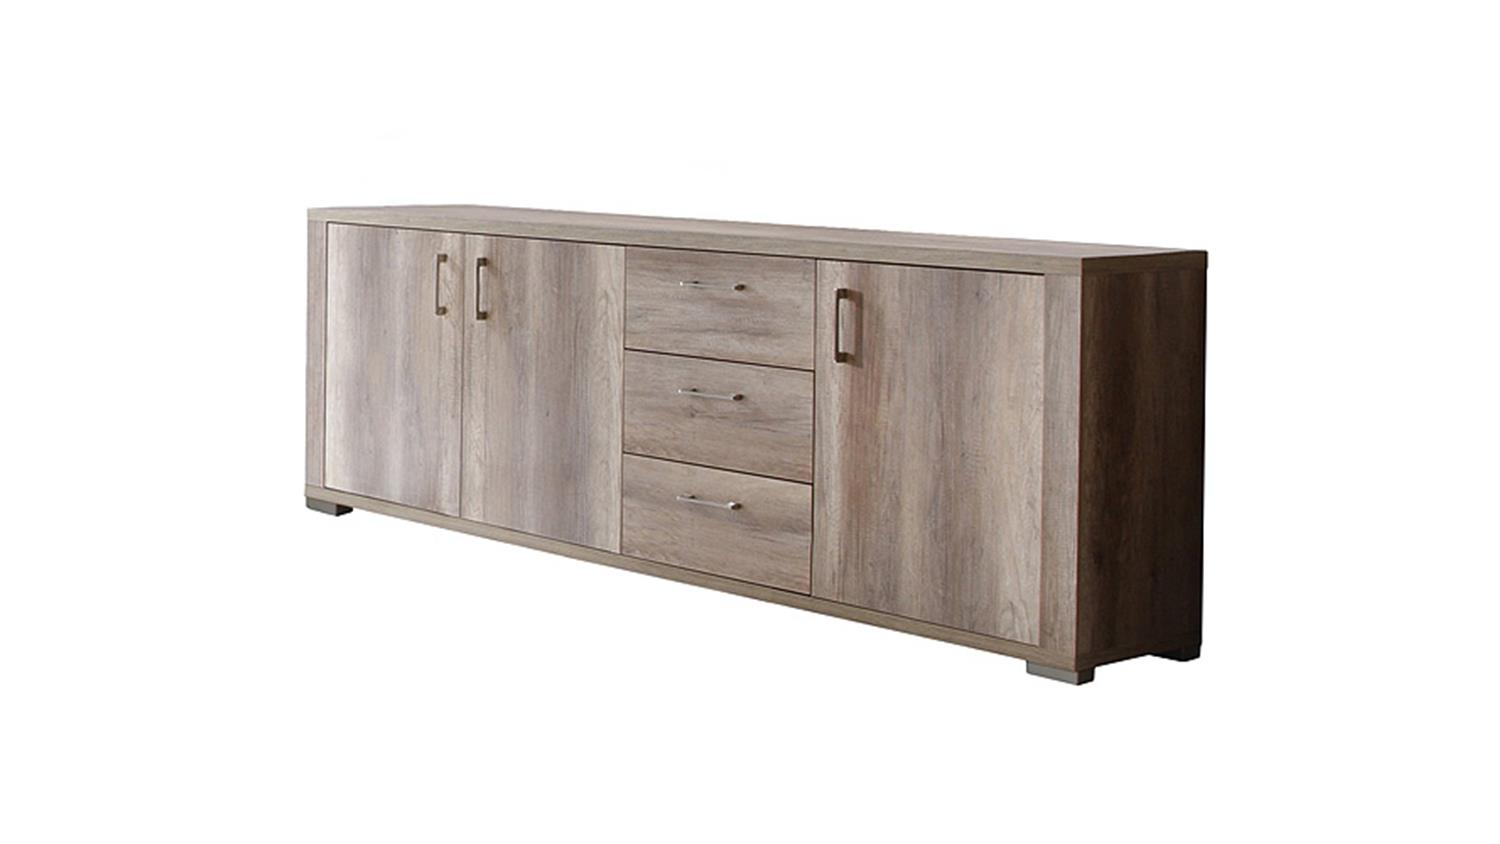 teak anrichte se15 2d teakholz antik massiv geb rstet 250cm tisch sideboard kommode smash. Black Bedroom Furniture Sets. Home Design Ideas